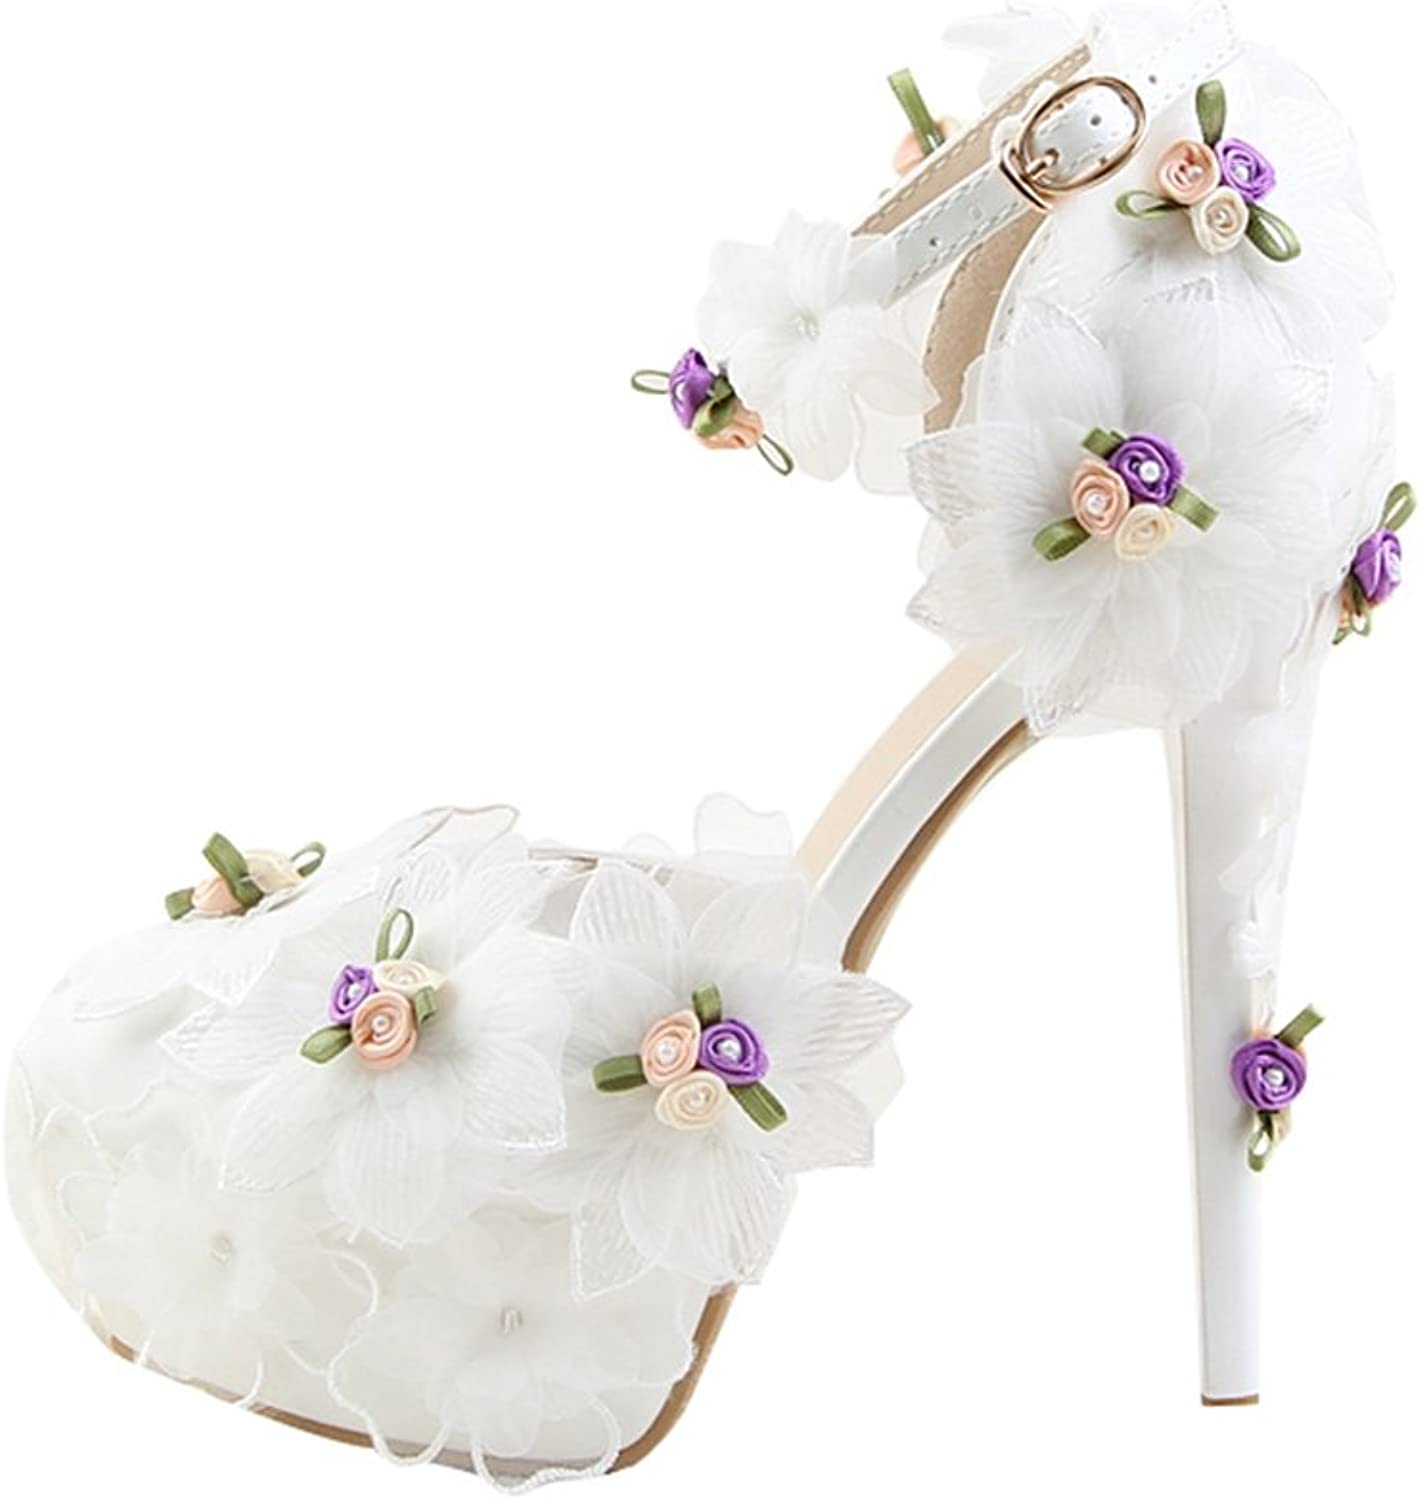 Minishion Women's Hidden Platform Stiletto Heel Bridal Wedding shoes with Lace Flowers